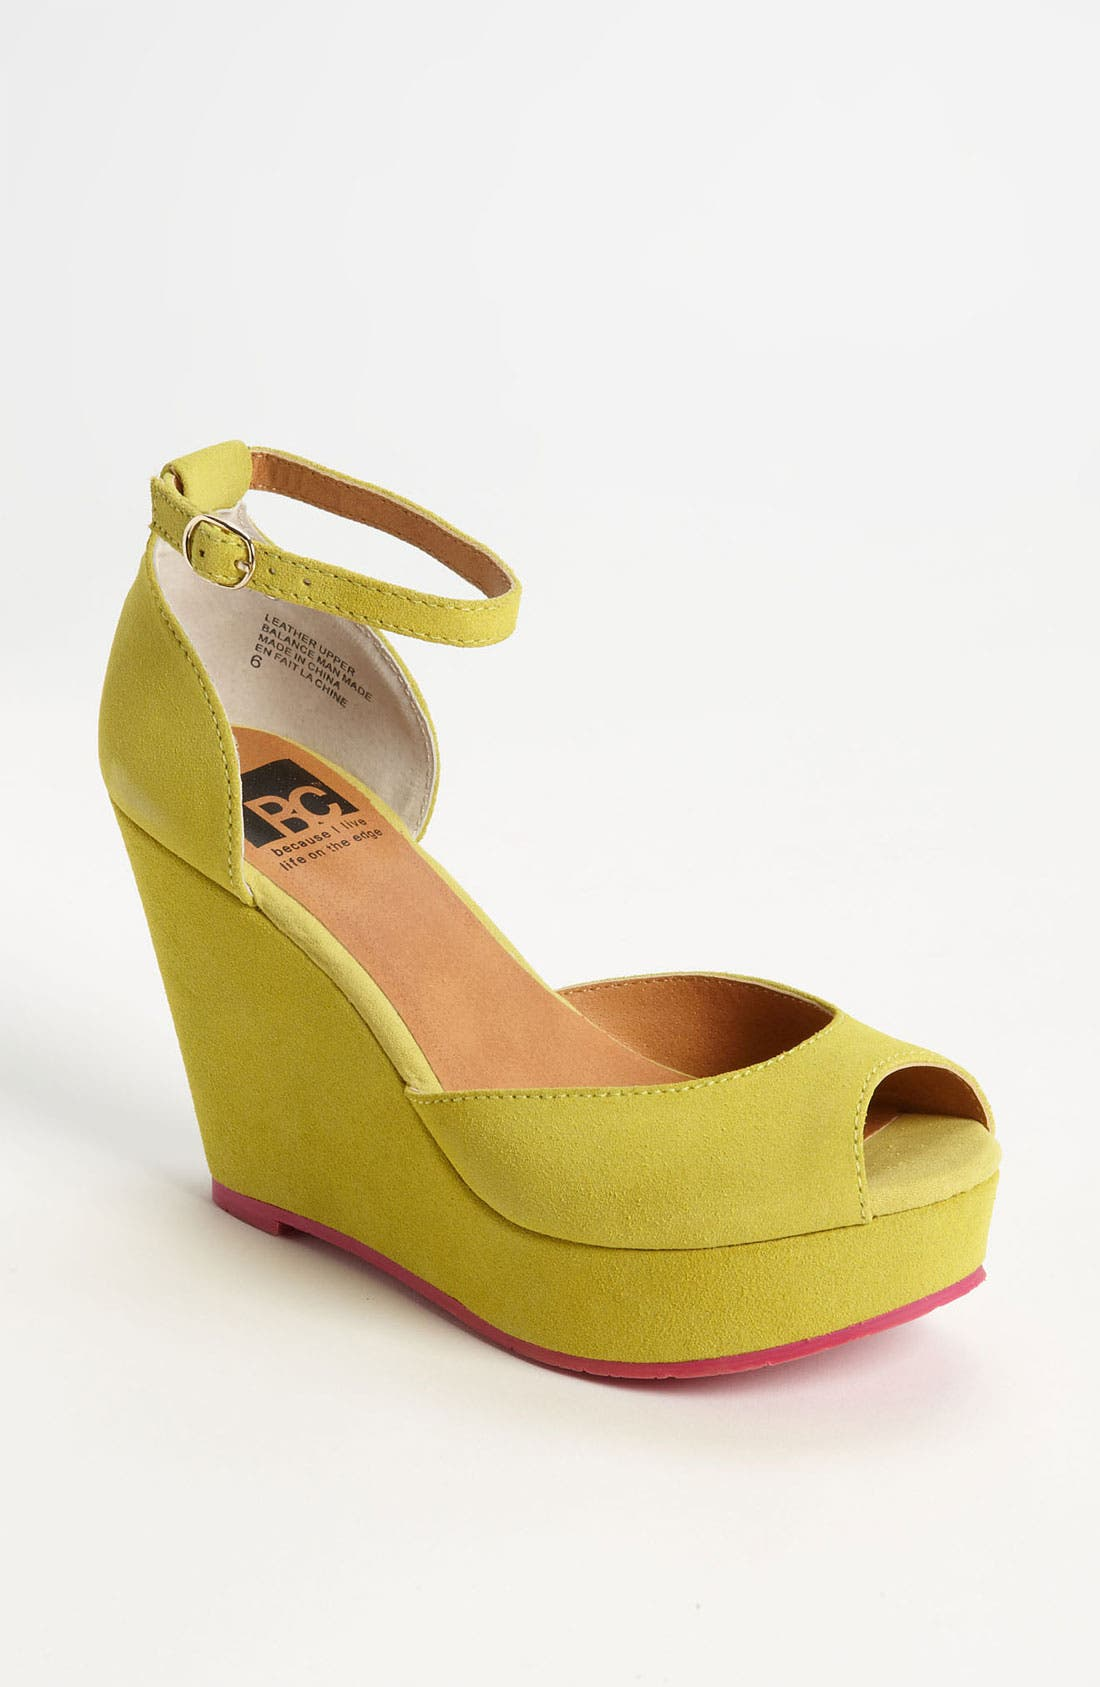 Alternate Image 1 Selected - BC Footwear 'Bright Idea' Wedge Sandal